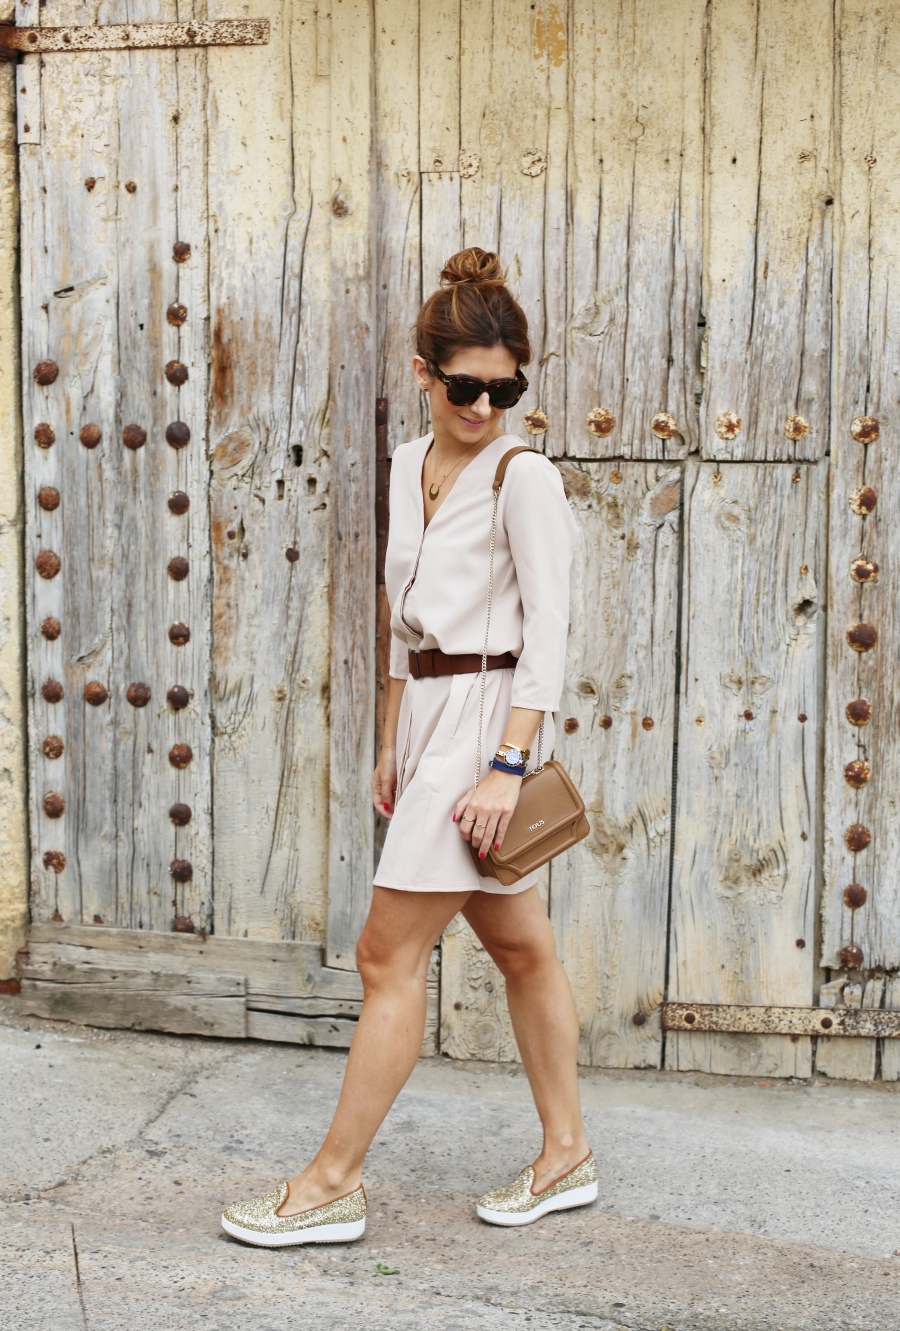 Beige dress - A trendy life